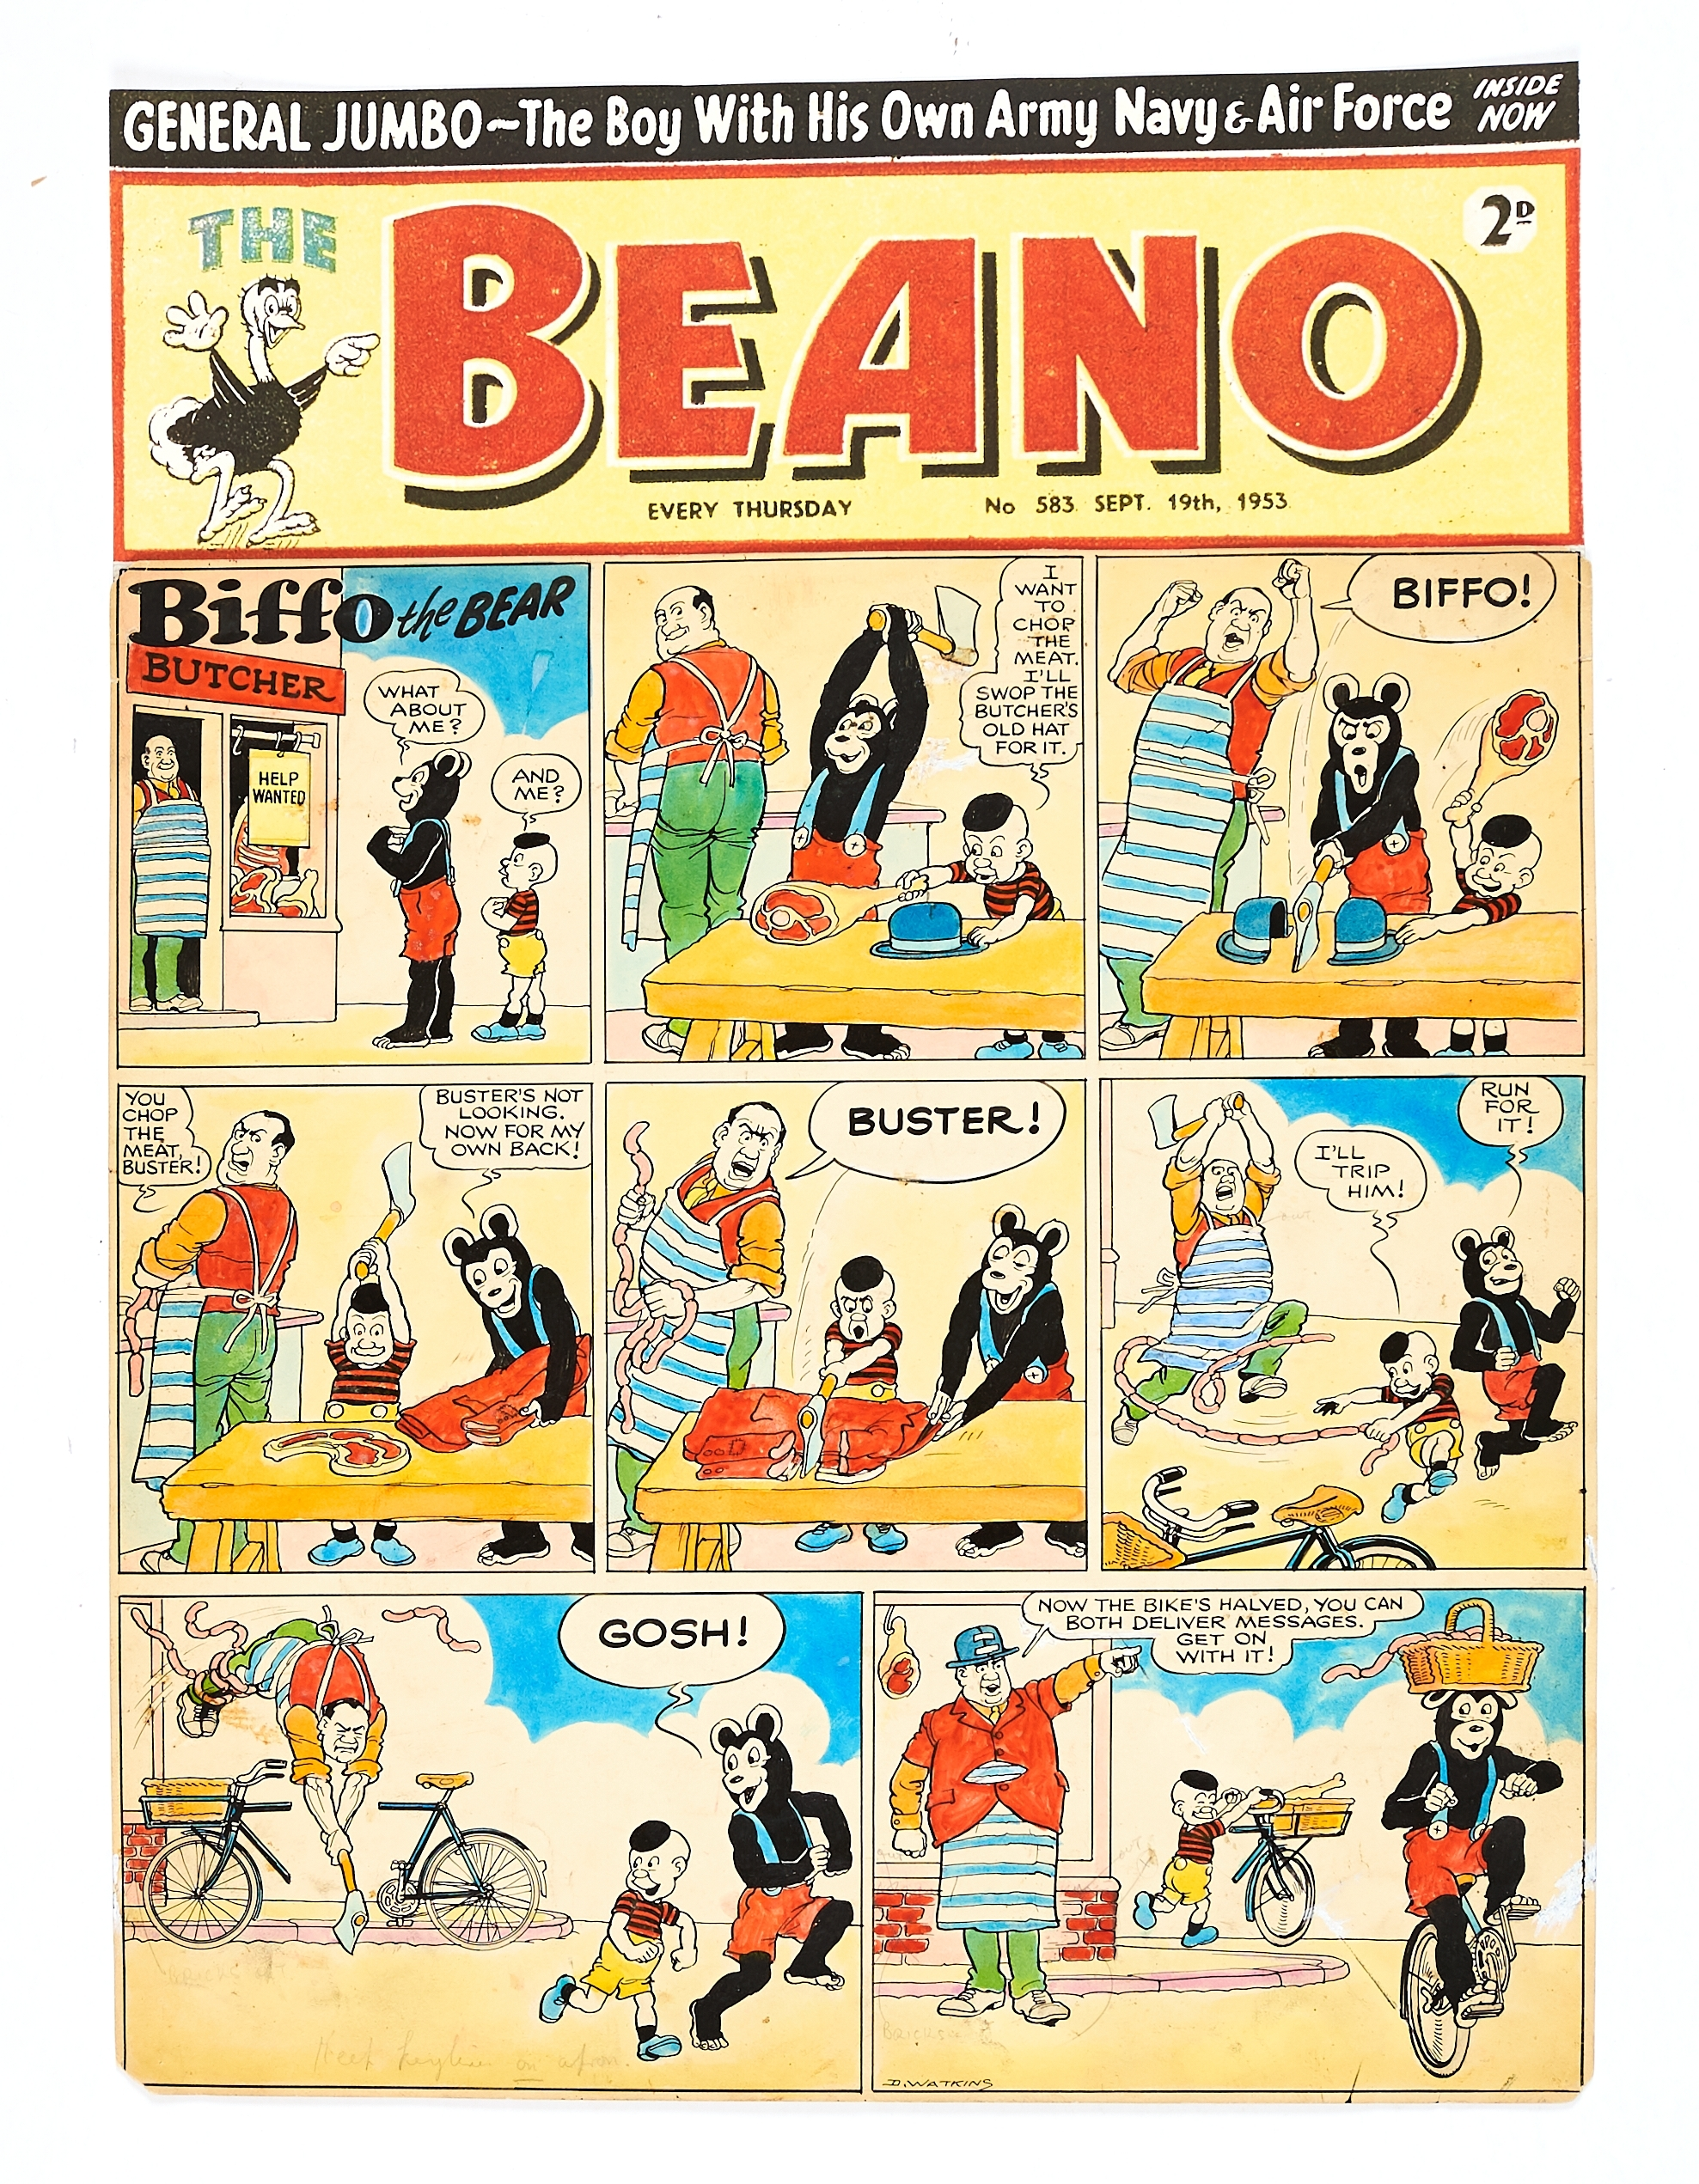 Lot 43 - The Beano/Biffo the Bear original front cover artwork (1953) drawn and signed by Dudley Watkins